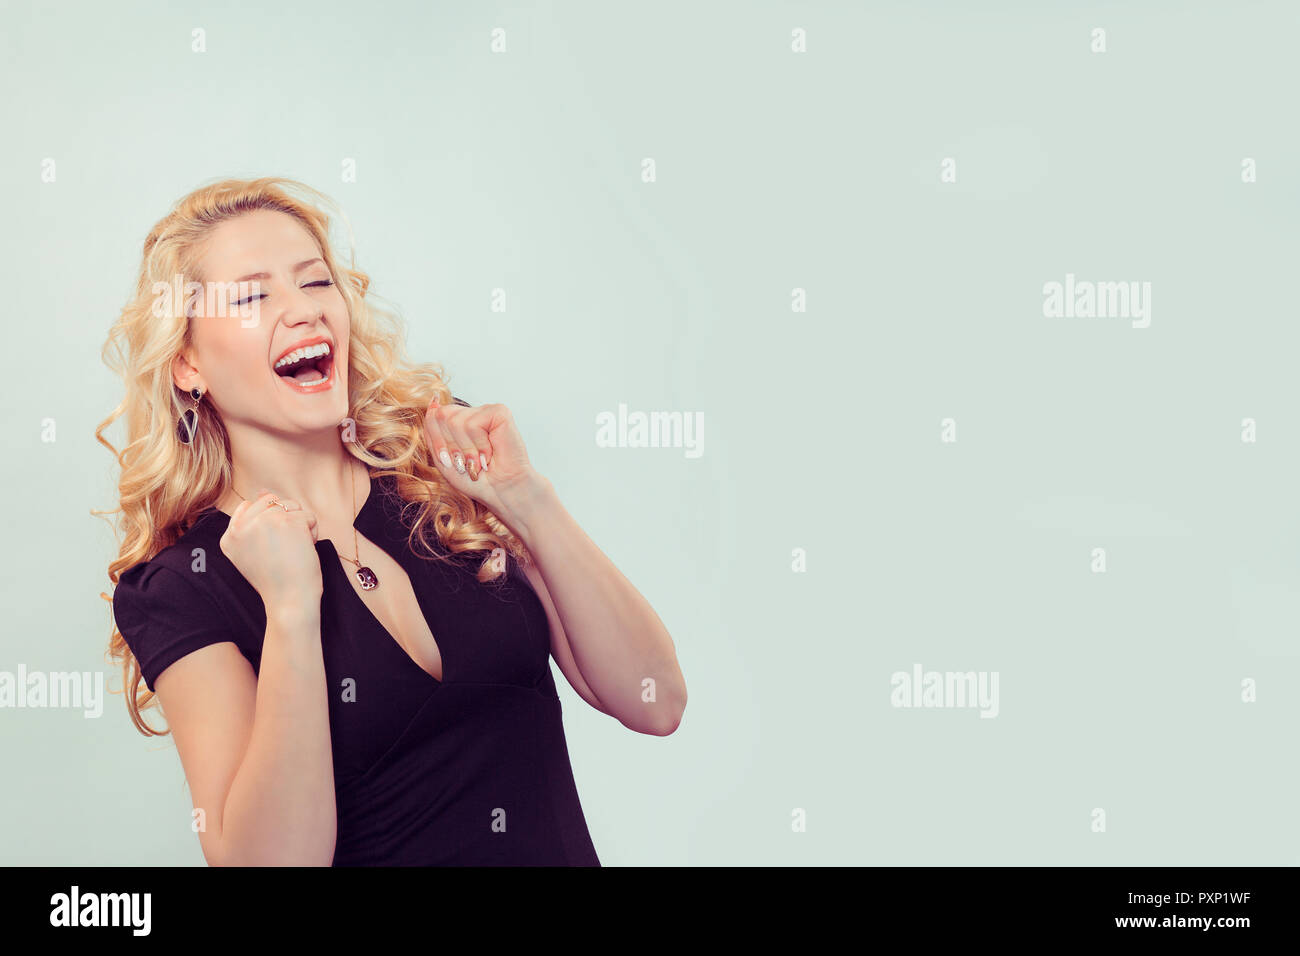 Laughing woman happy with win - Stock Image